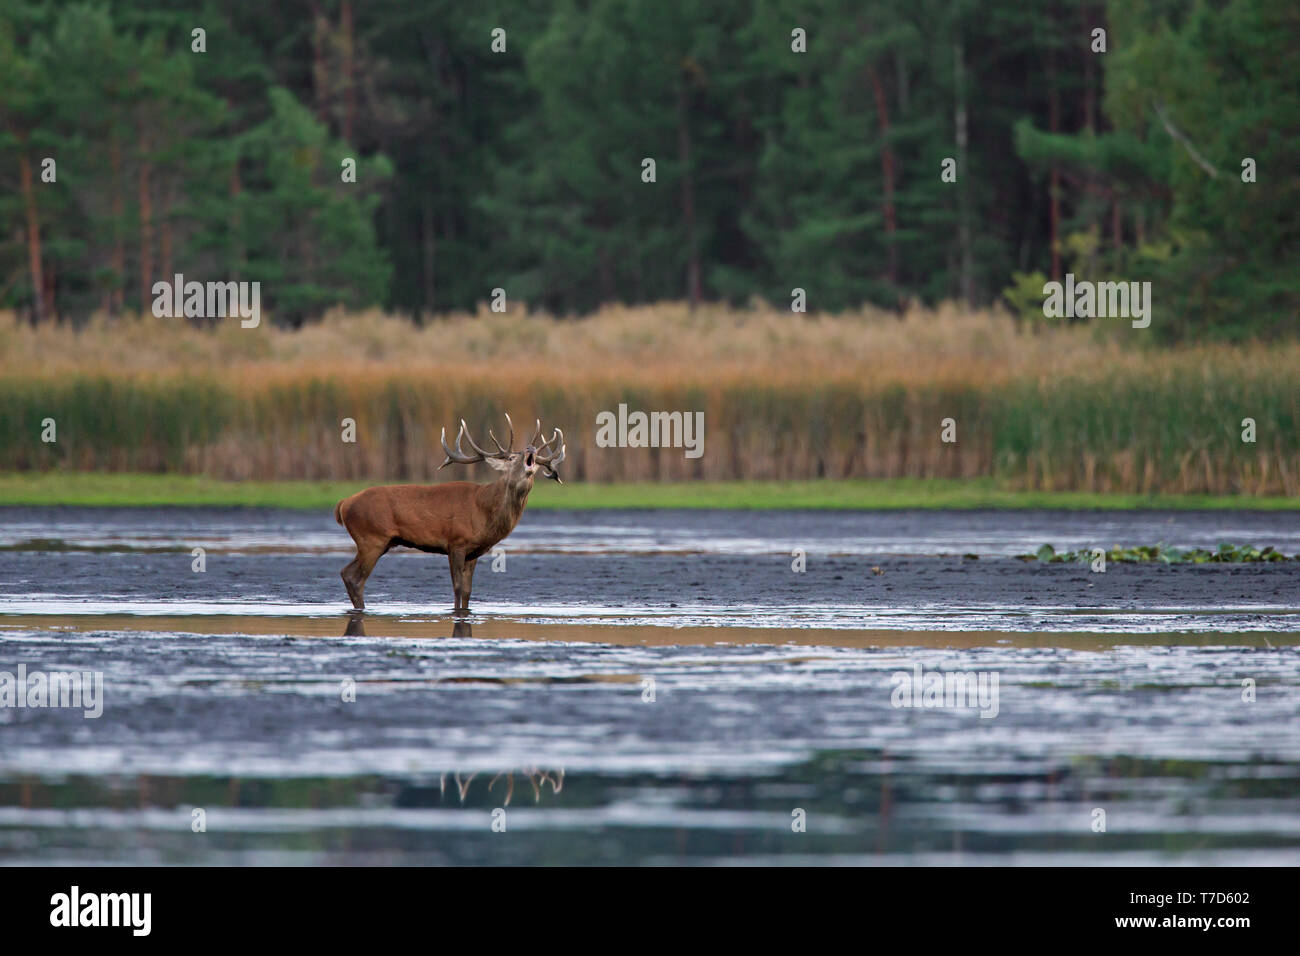 Solitary red deer (Cervus elaphus) stag standing in shallow water of lake / stream / river while bellowing / roaring during the rut in autumn / fall - Stock Image